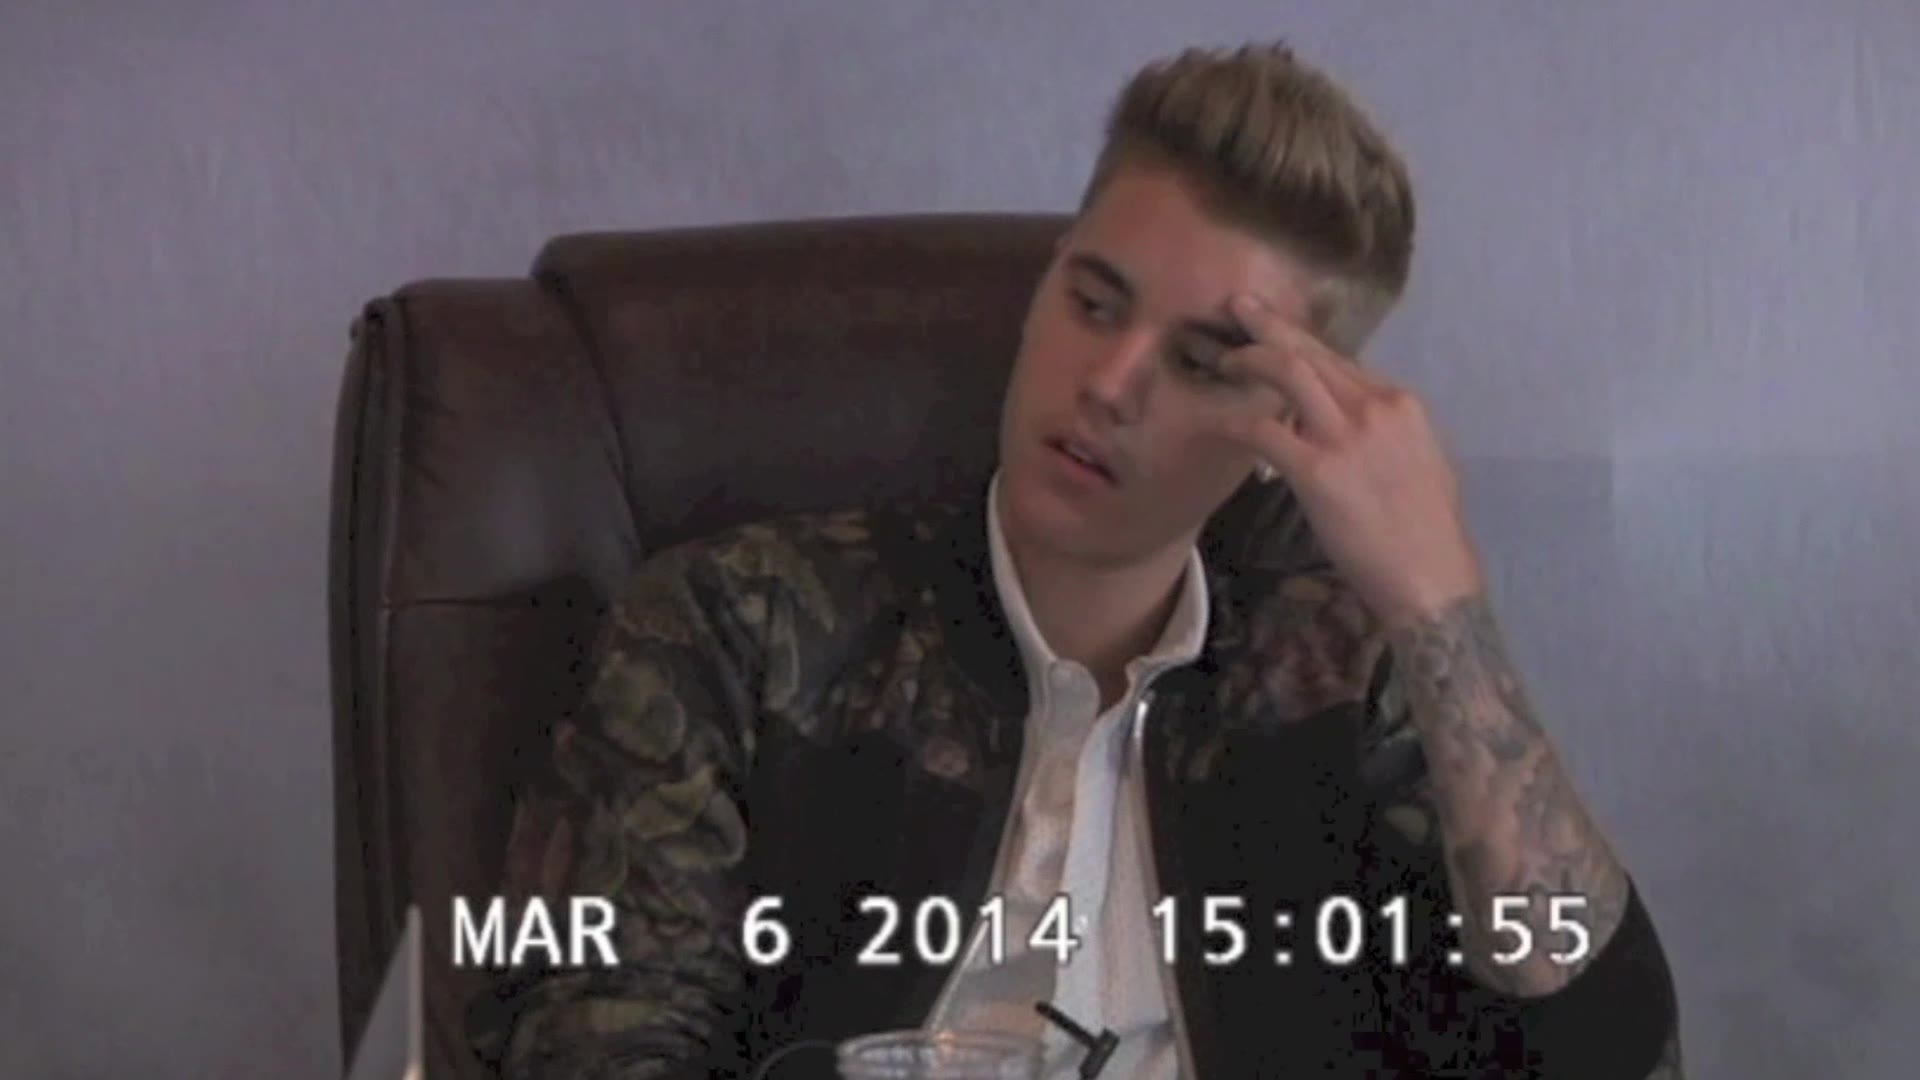 Justin Bieber's People Prohibit Him From Live Interviews